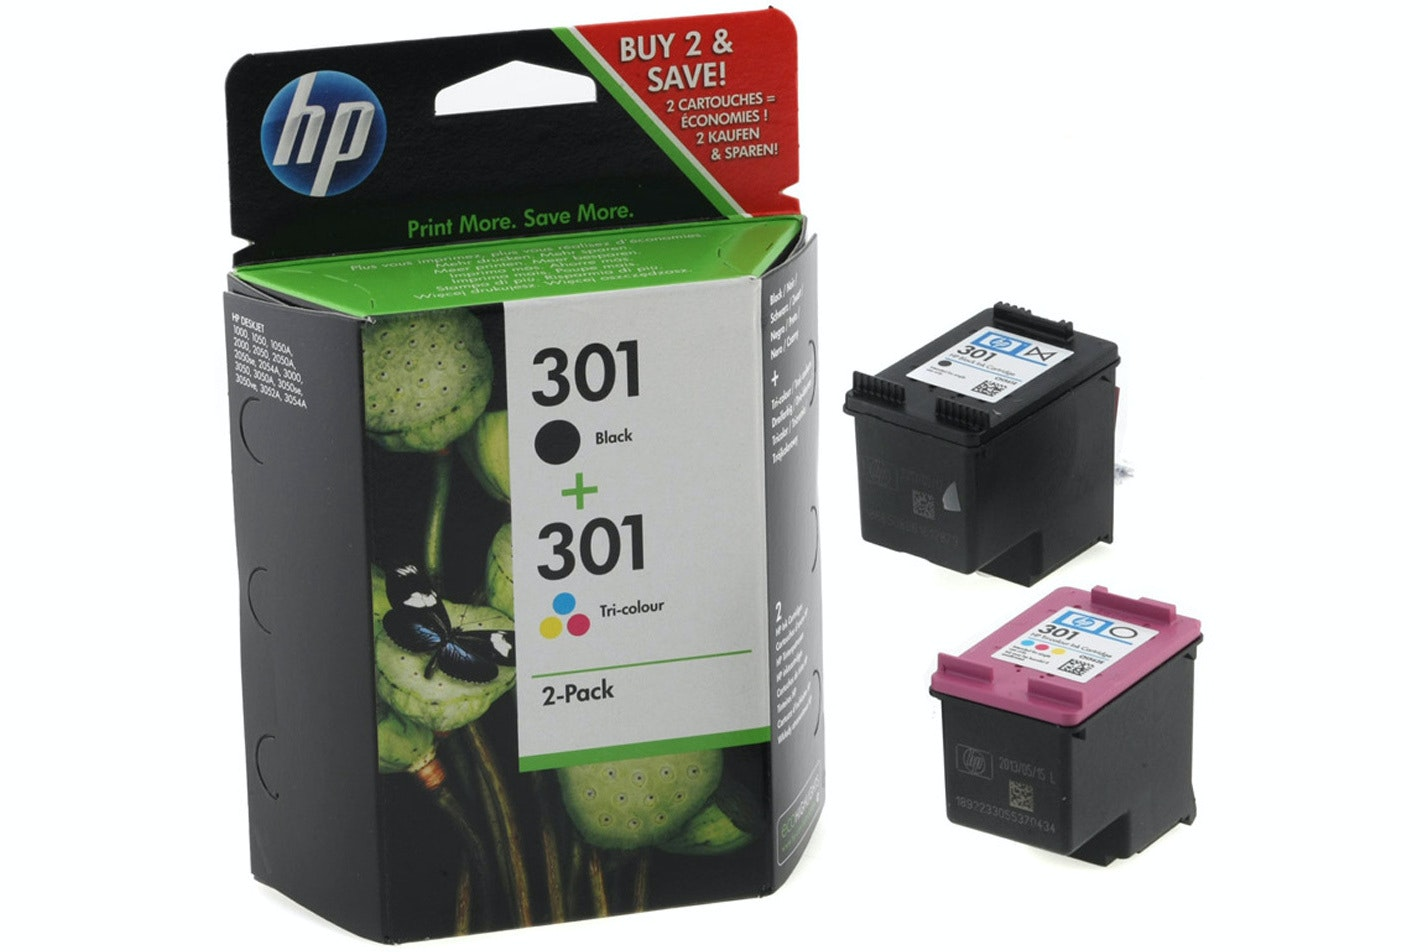 HP 301 Multi-Pack Ink